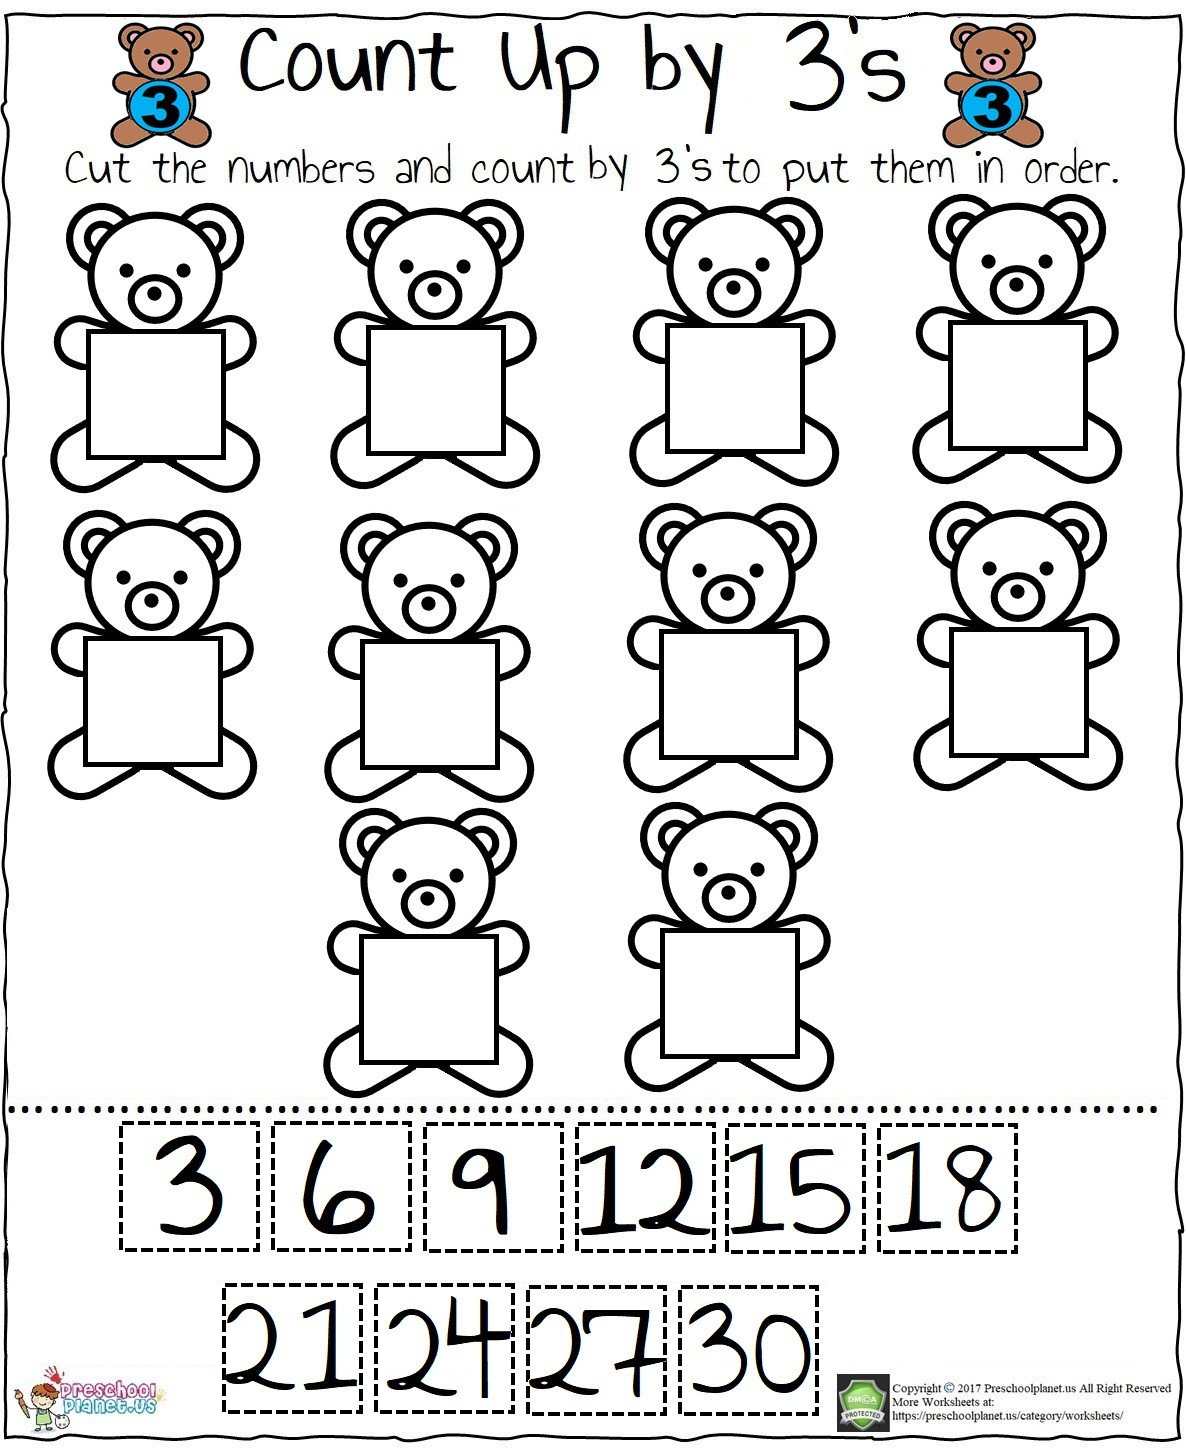 Counting Worksheets Preschool Preschoolplanet – Preschool Craft Ideas and Worksheets